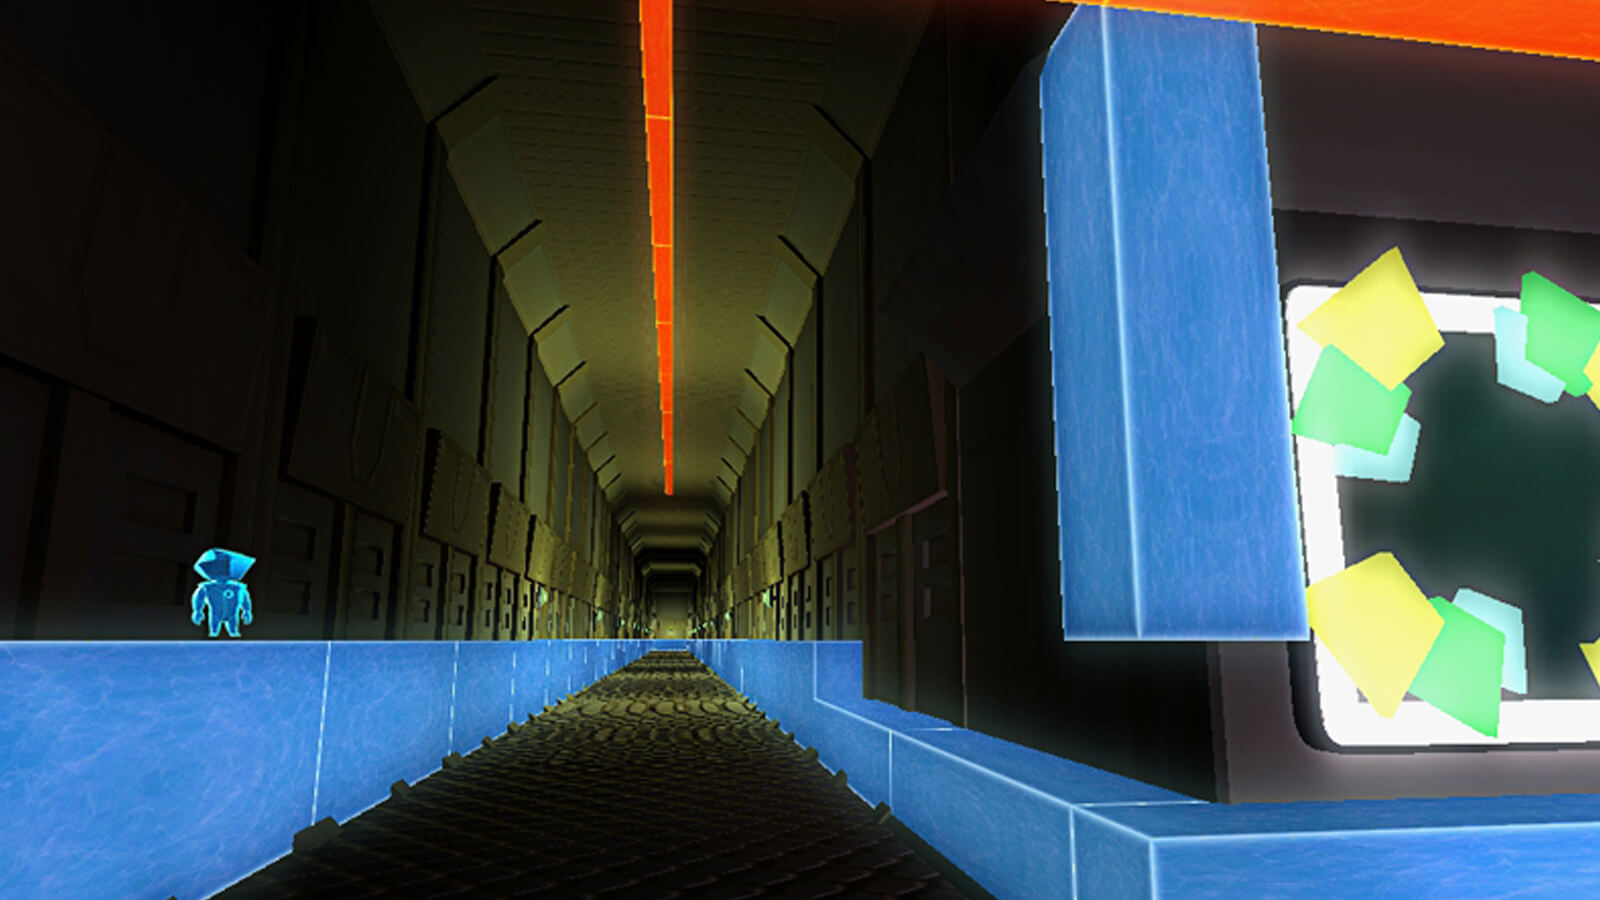 The player's avatar stands atop blue blocks running the length of a long metallic hallway